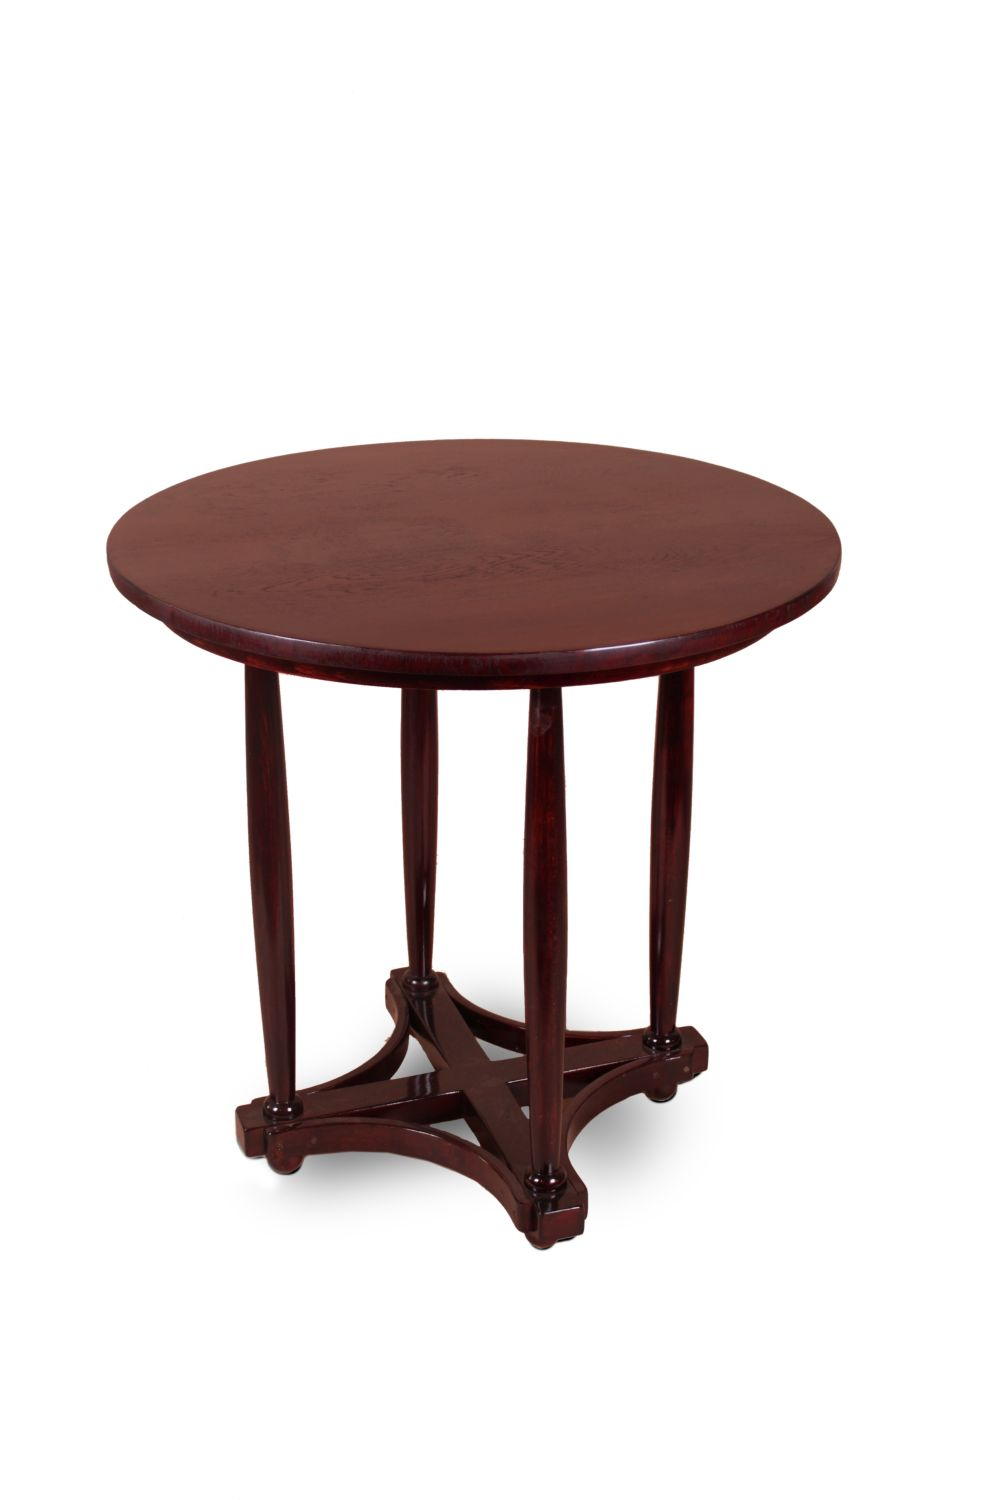 #128 could be from Josef Hoffmann Art Nouveau Table | Jugendstiltisch Image